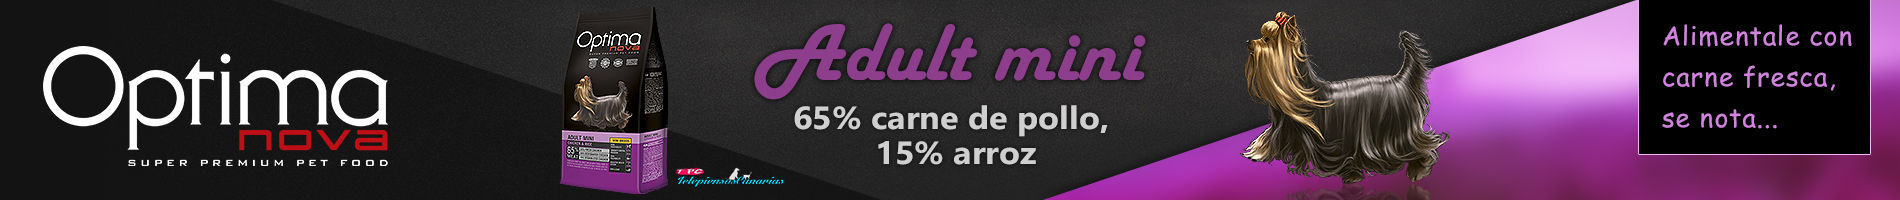 Optima nova adult mini, 65% pollo y con 15% arroz